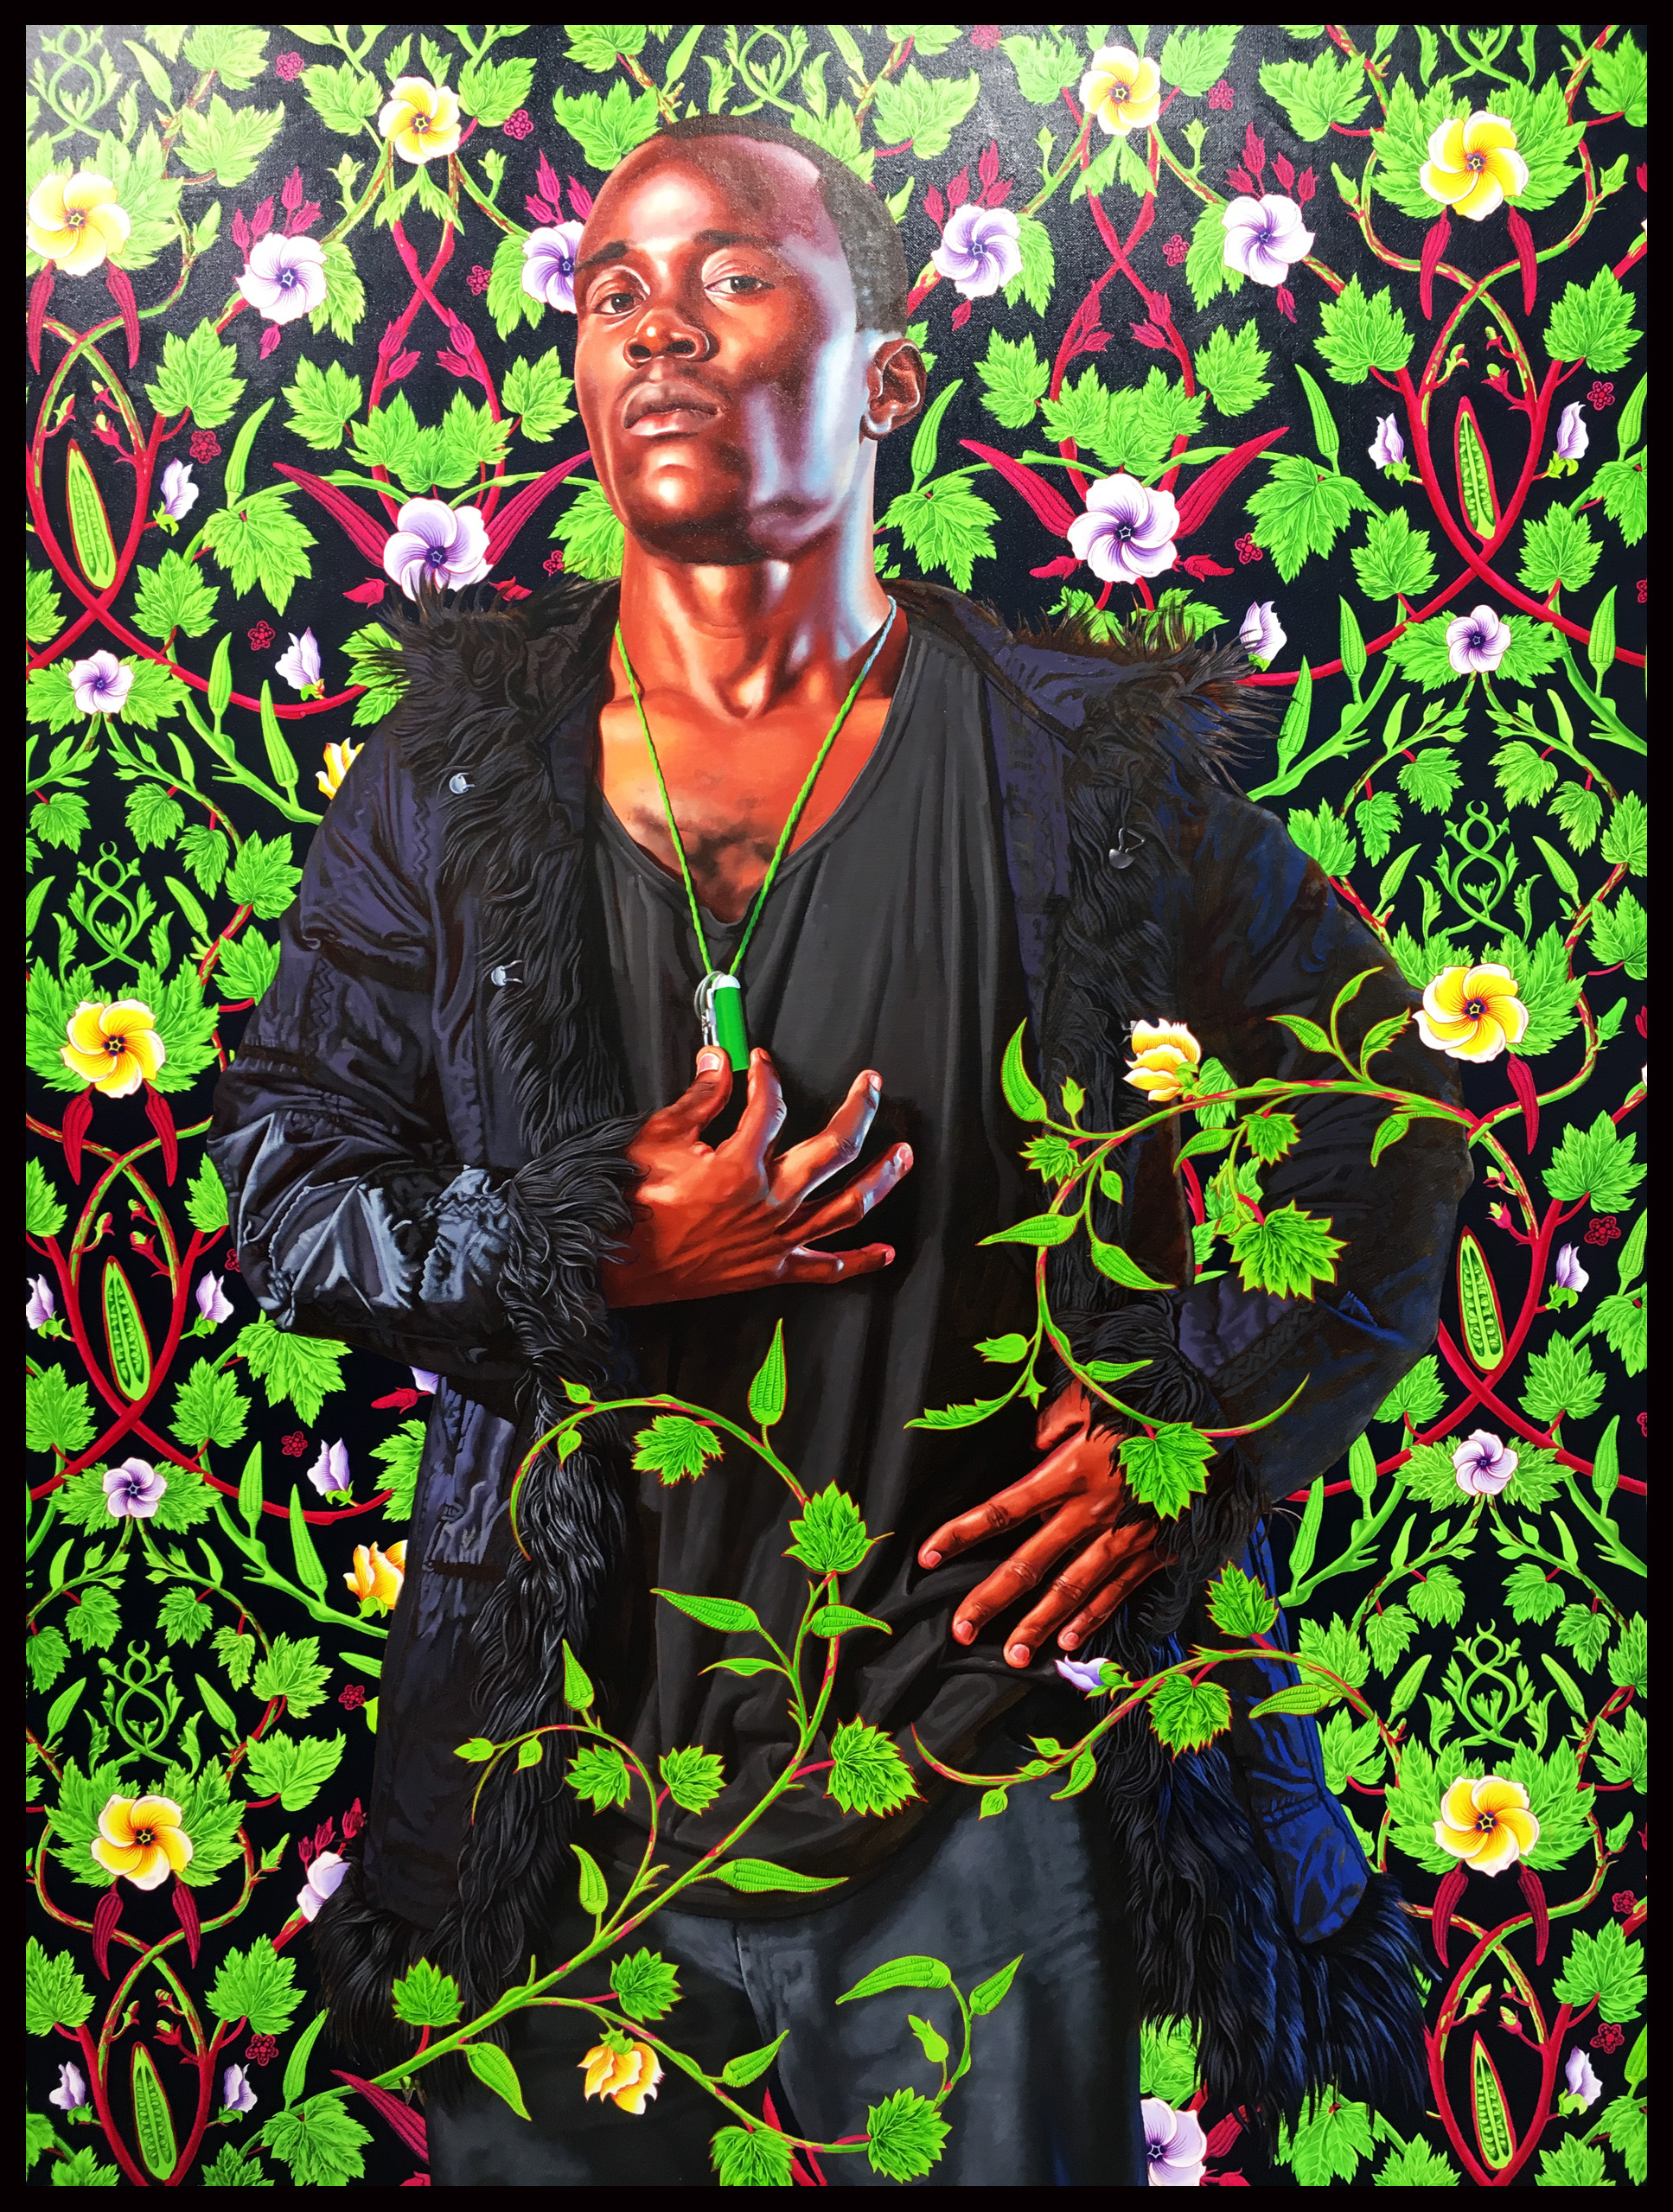 elizabeth-of-france_-queen-of-spaikehinde-wiley_galerie-daniel-templon_@loeildoliv